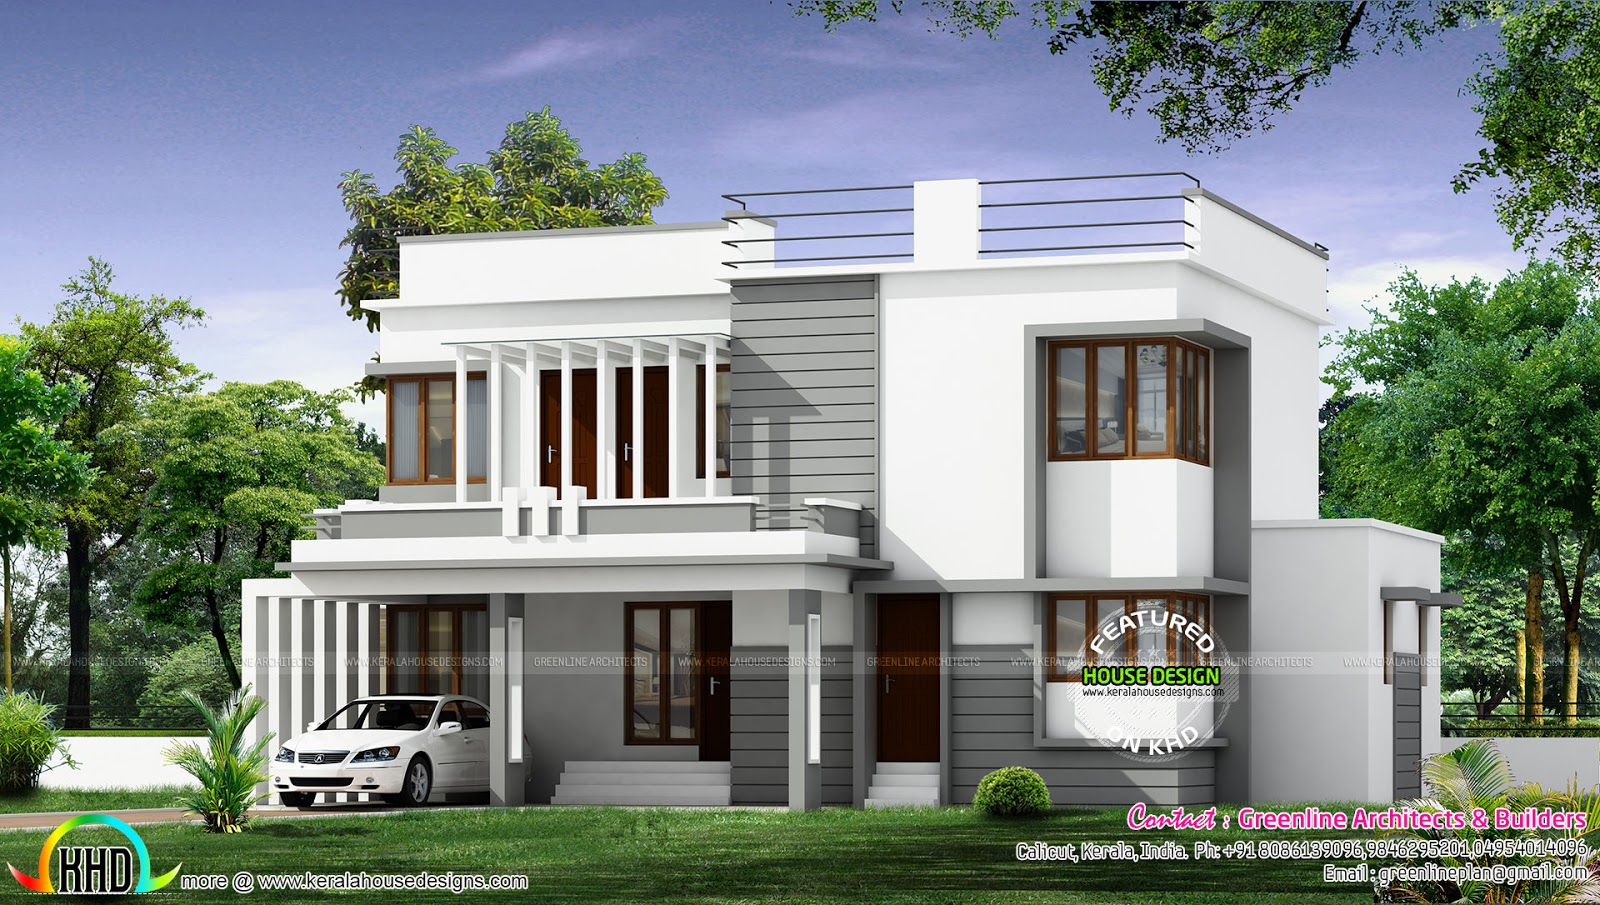 New modern house architecture kerala home design and for New modern home design photos